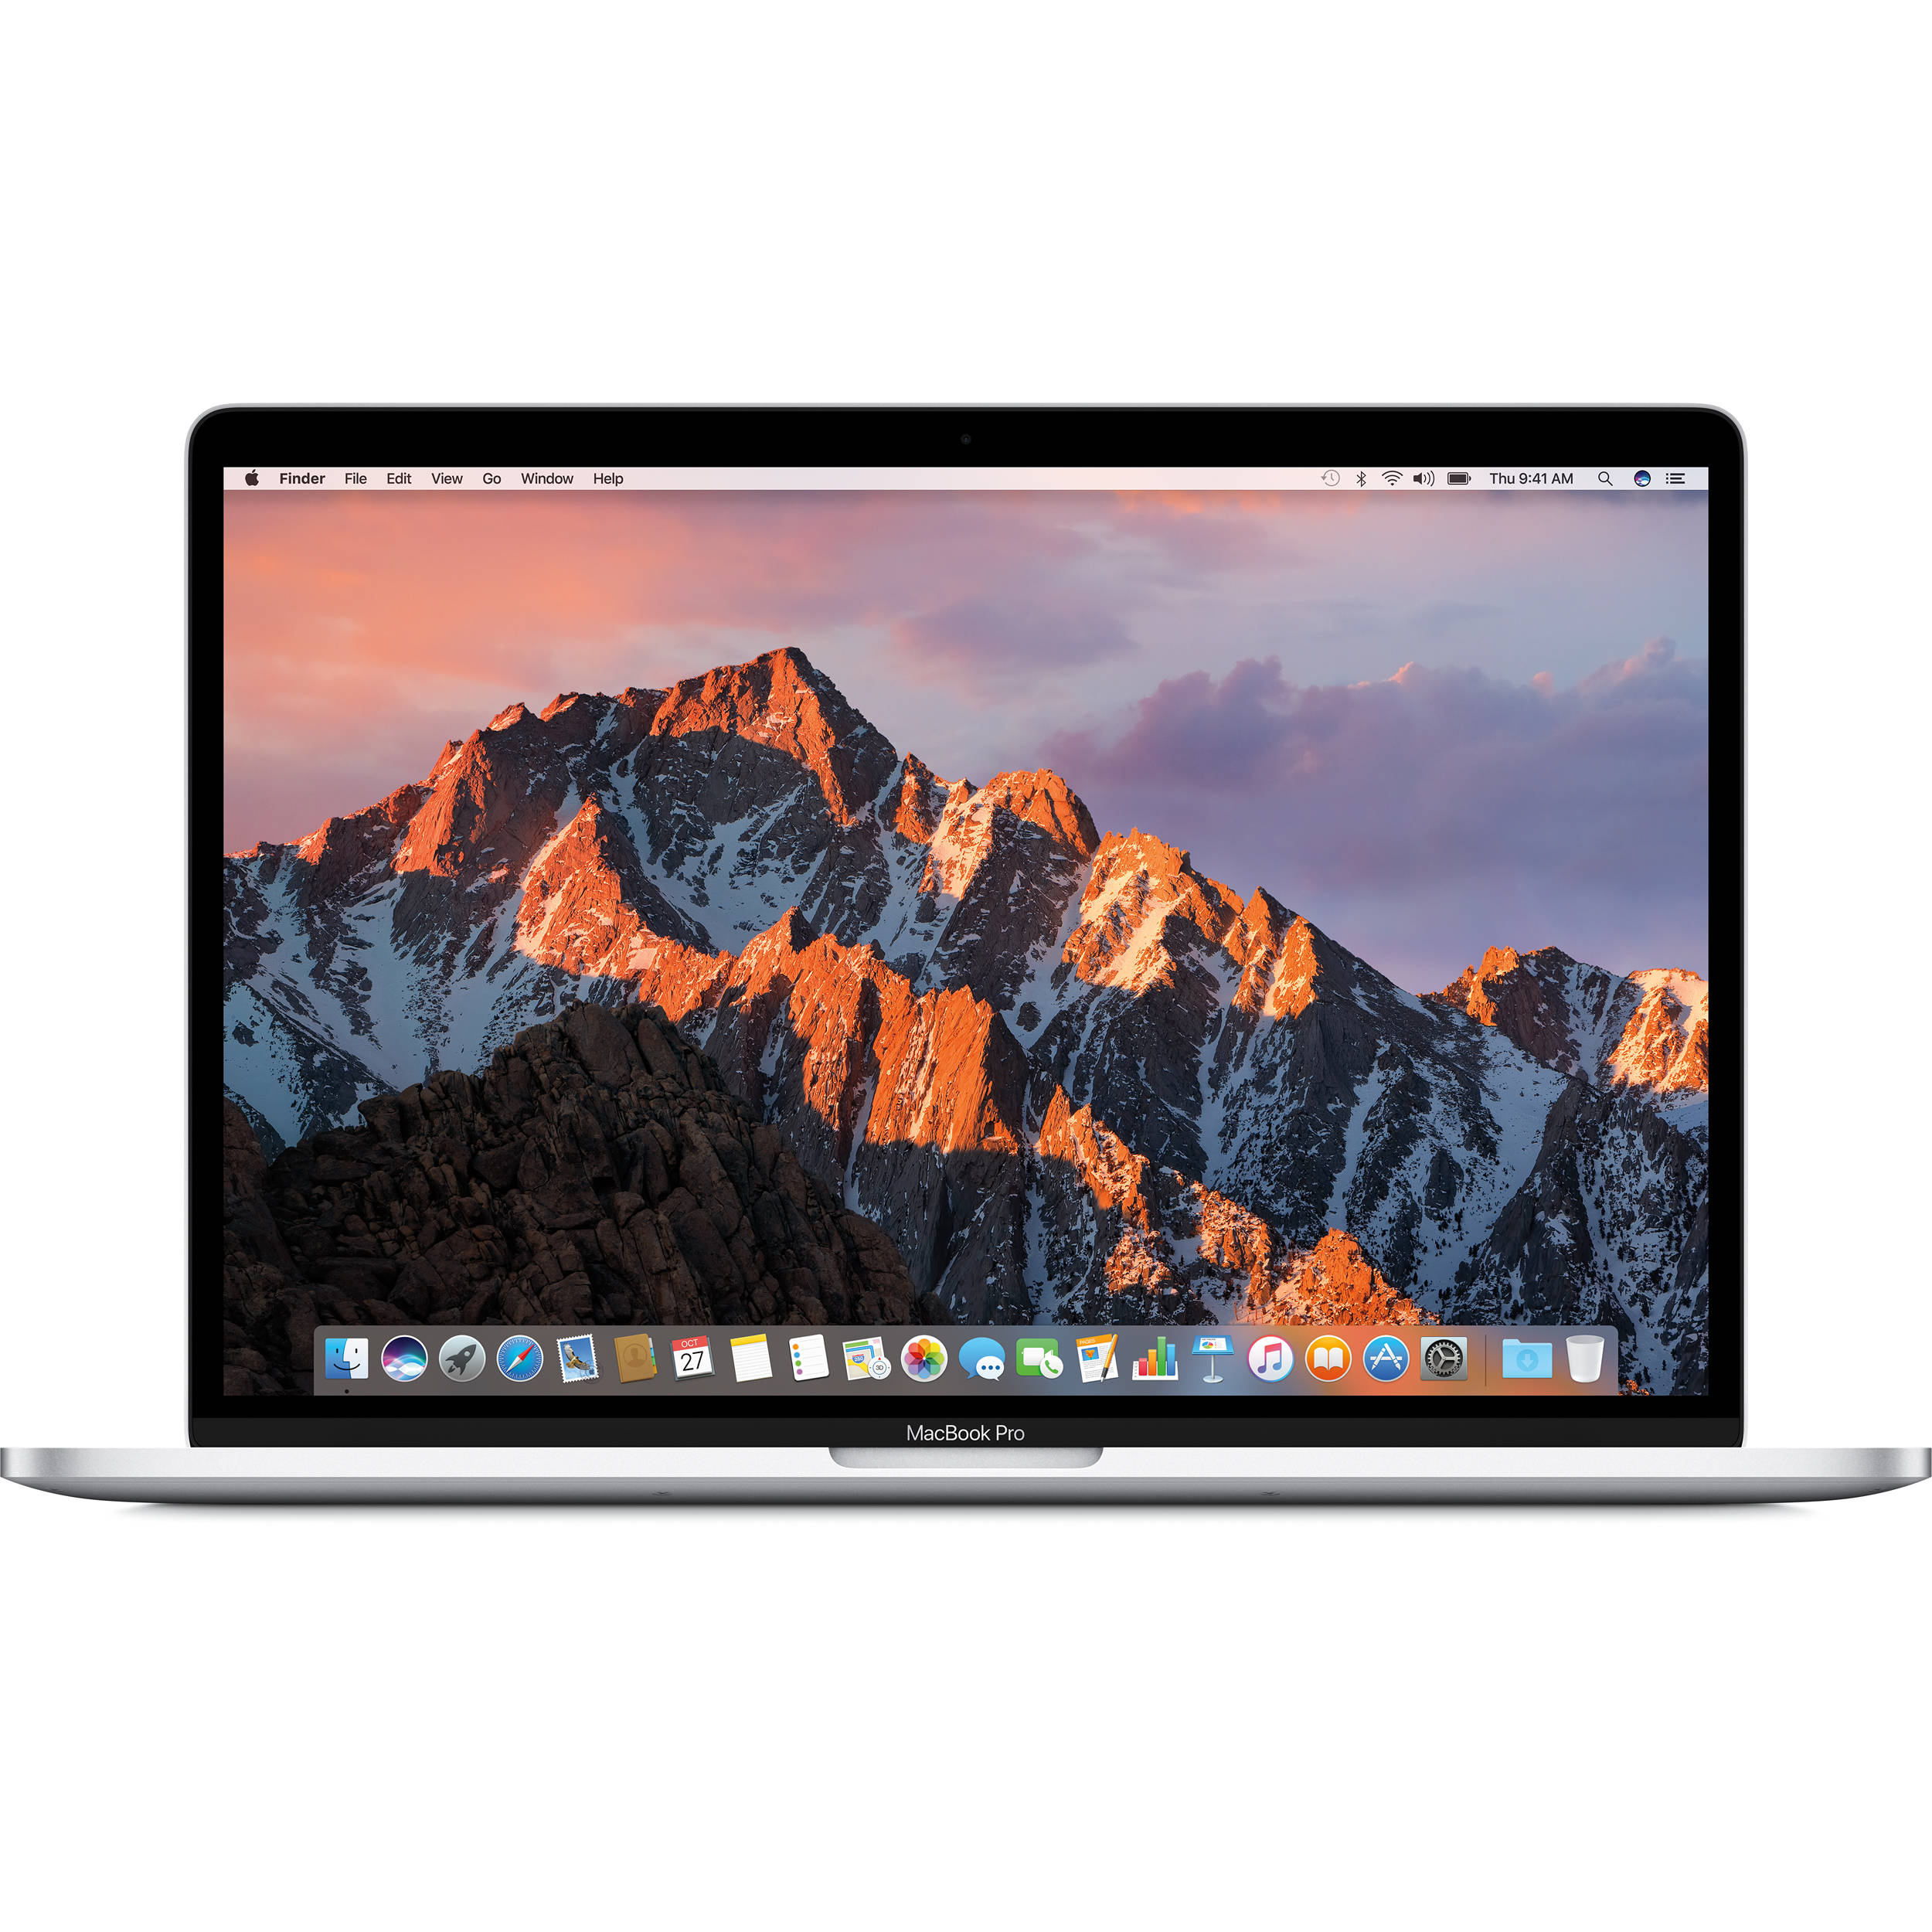 Apple 154 Macbook Pro With Touch Bar Mptu2ll A Bh Photo Computer Diagram Its Parts Best Laptops Under 500 Mid 2017 Silver